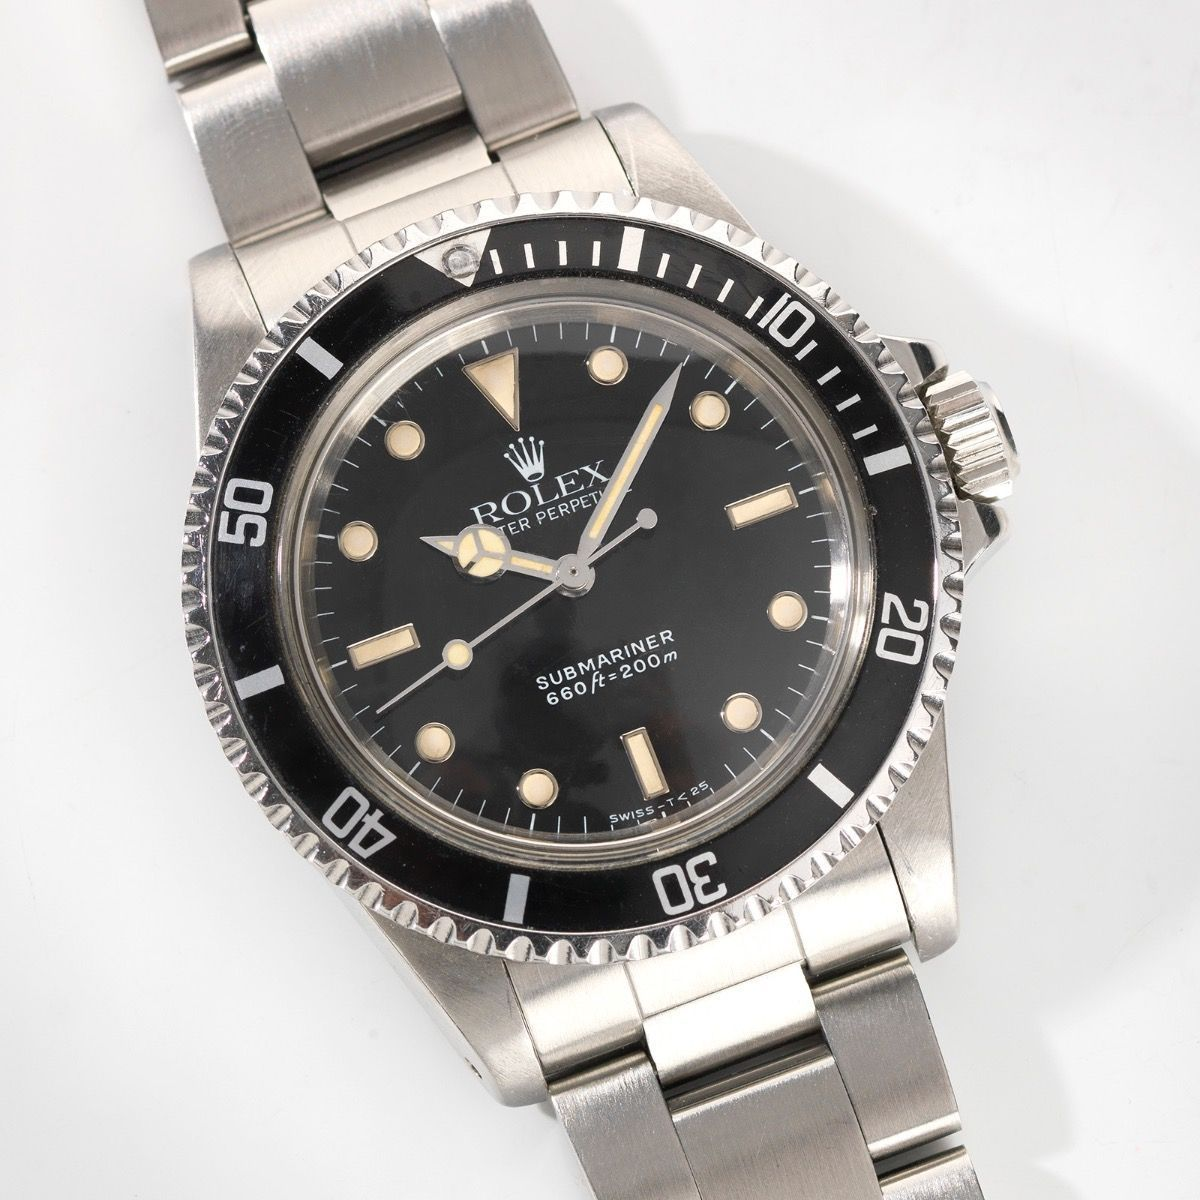 Five Things To Look For When Buying A Rolex Tymelord Rolex Watches Rolex Submariner Rolex